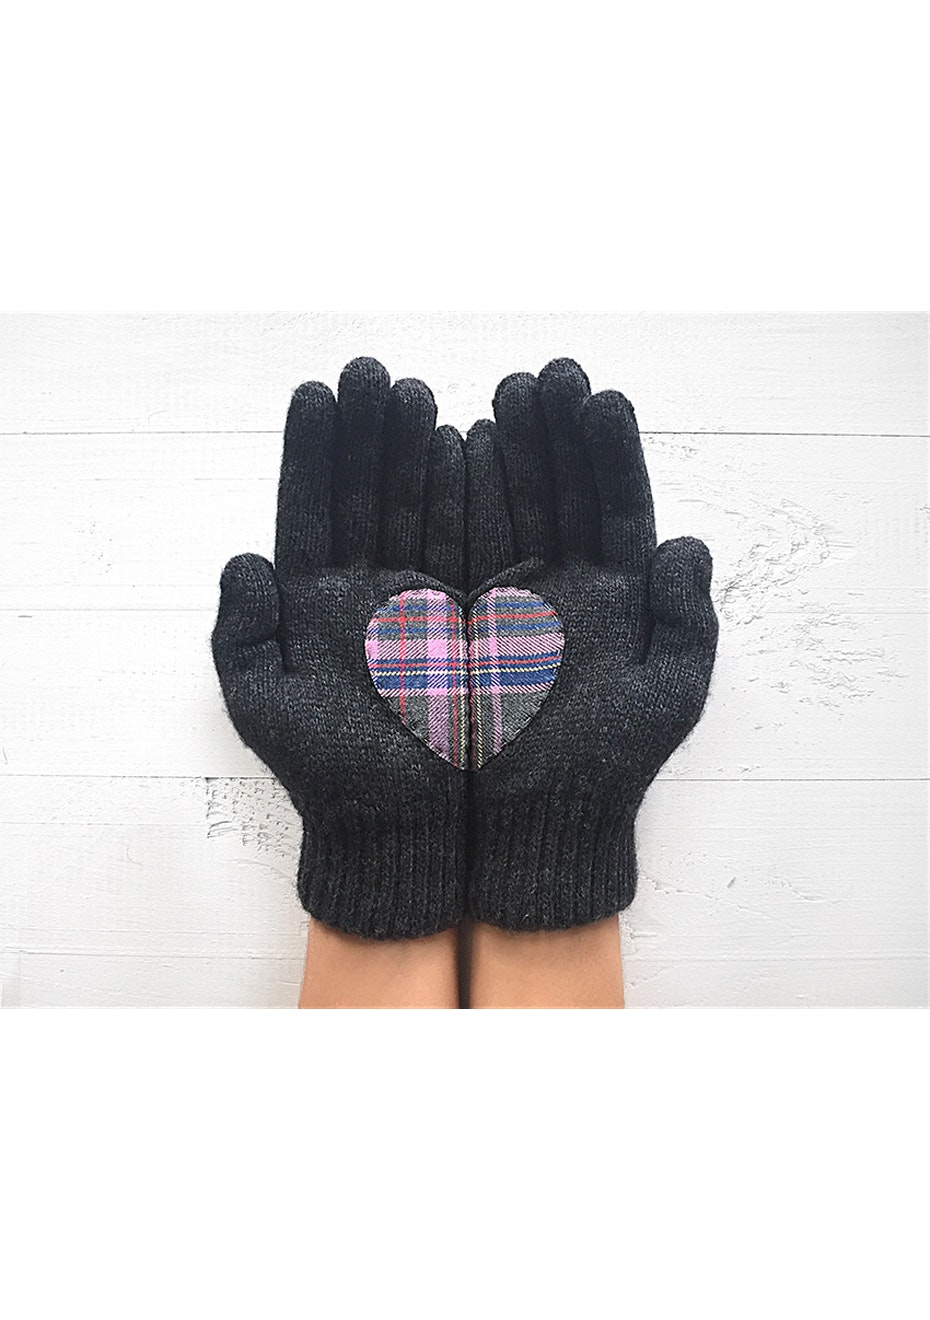 Heart Gloves - Charcoal/Plaid